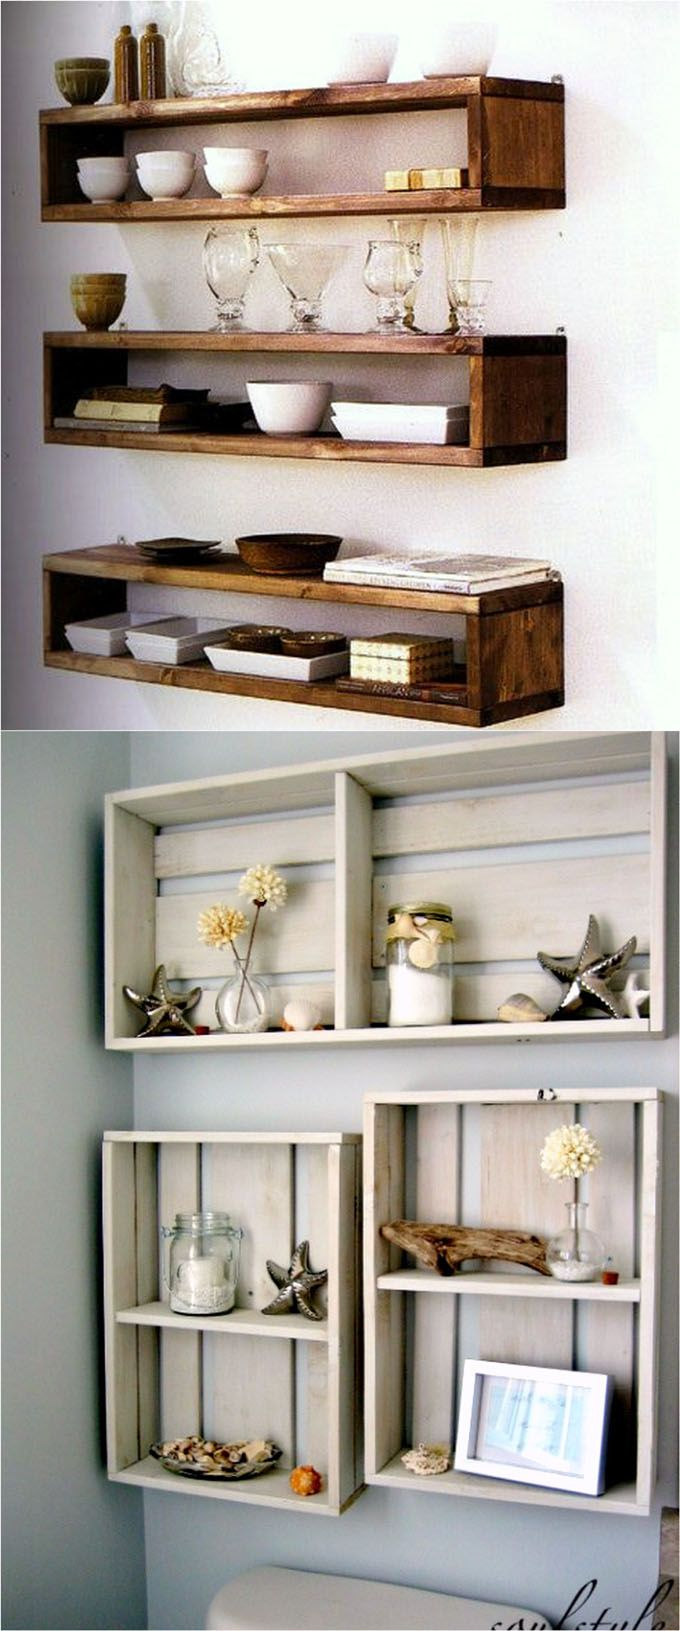 Best 25 shelves ideas on pinterest open shelving Floating shelf ideas for kitchen